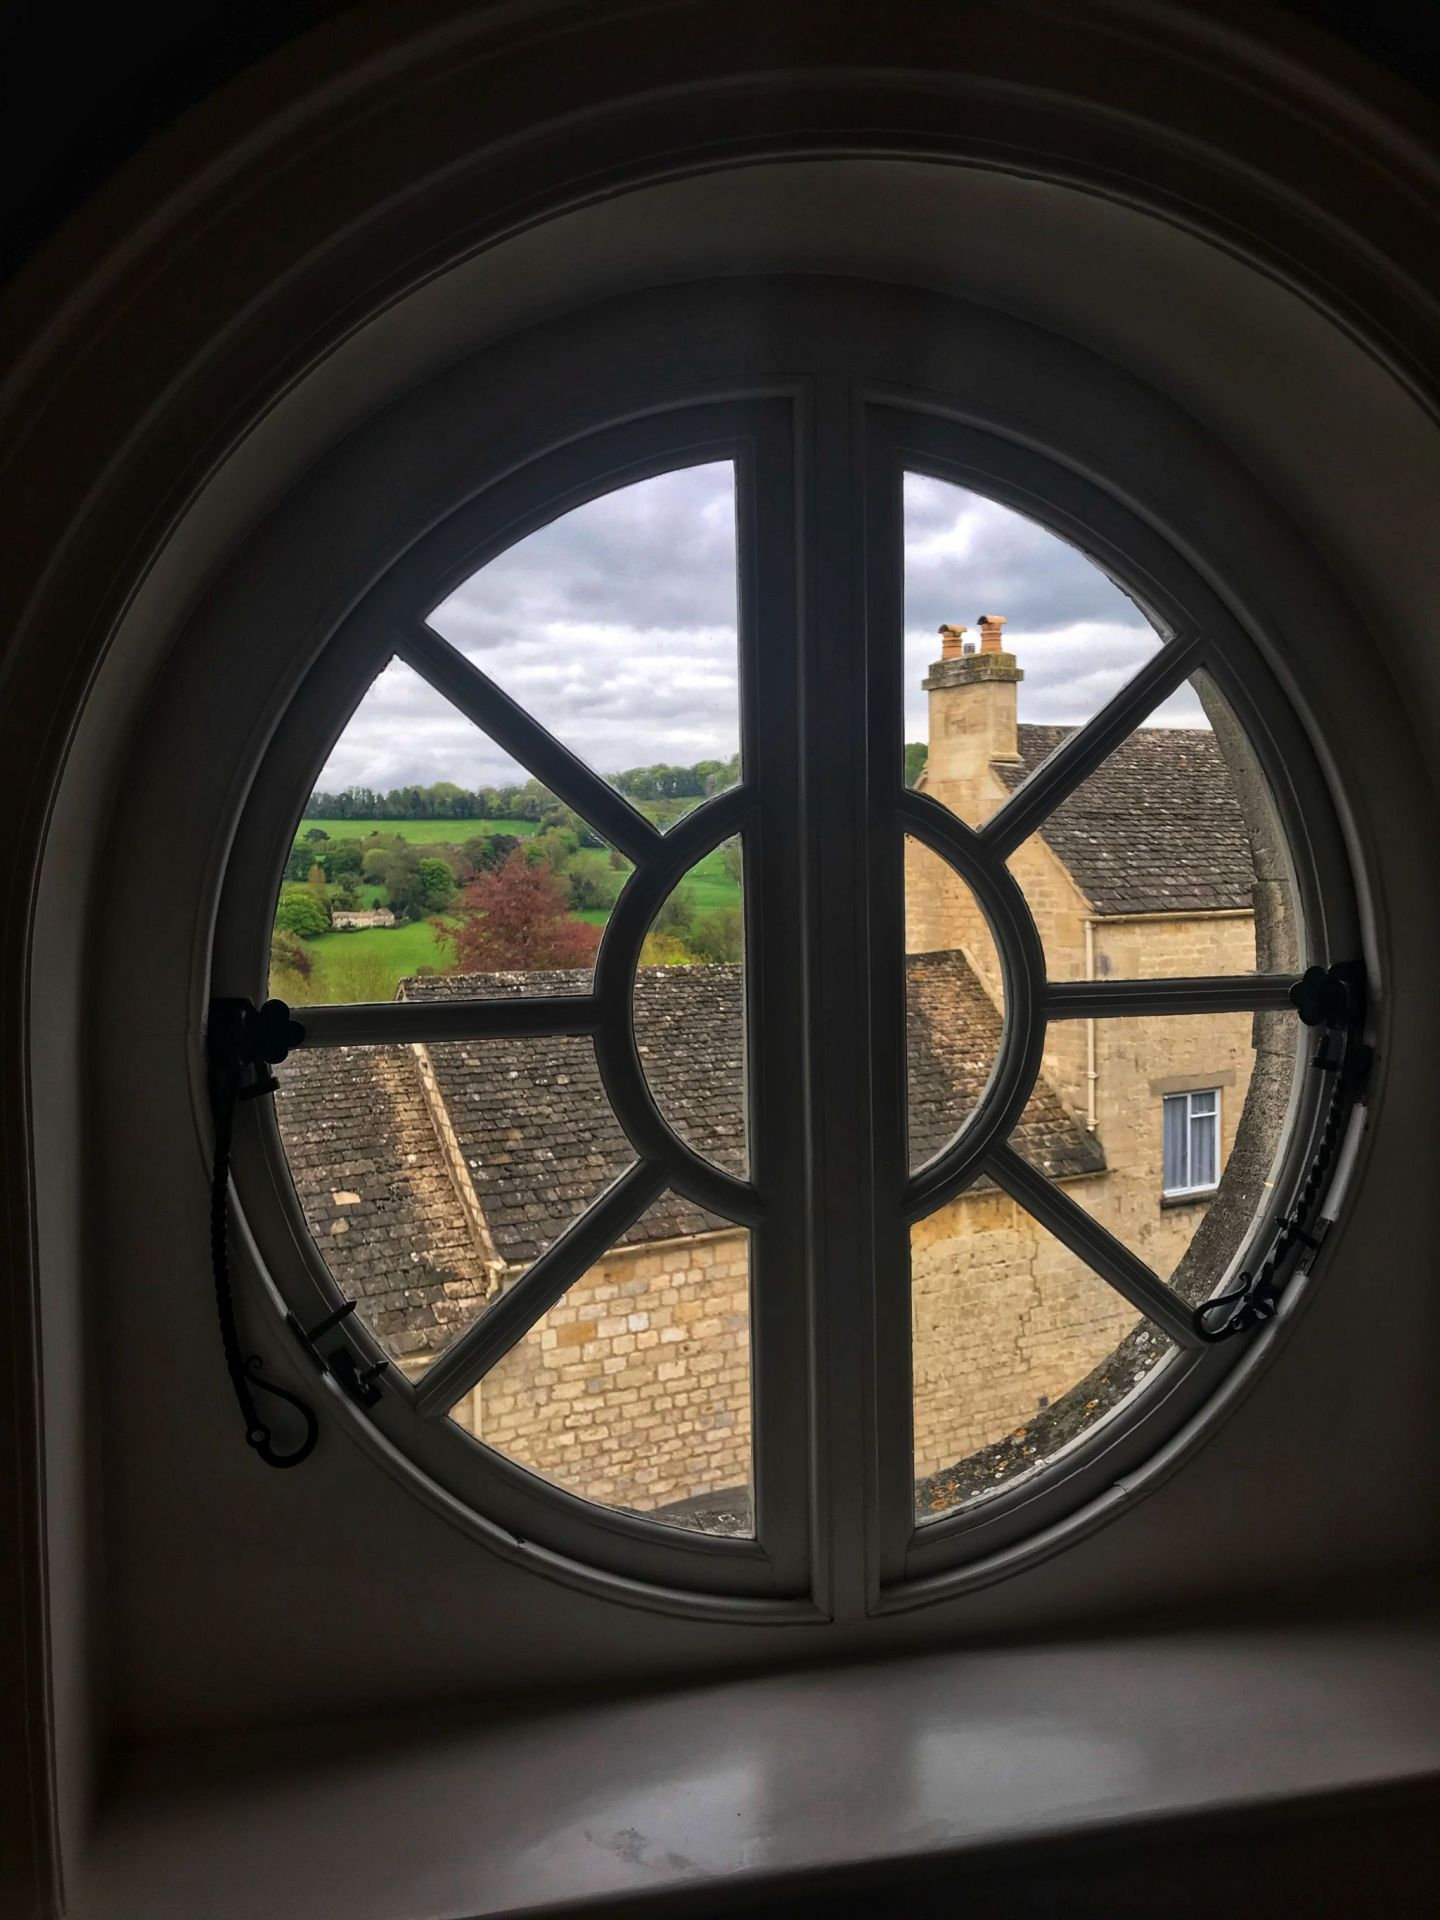 Picturesque Painswick throught the porthole window